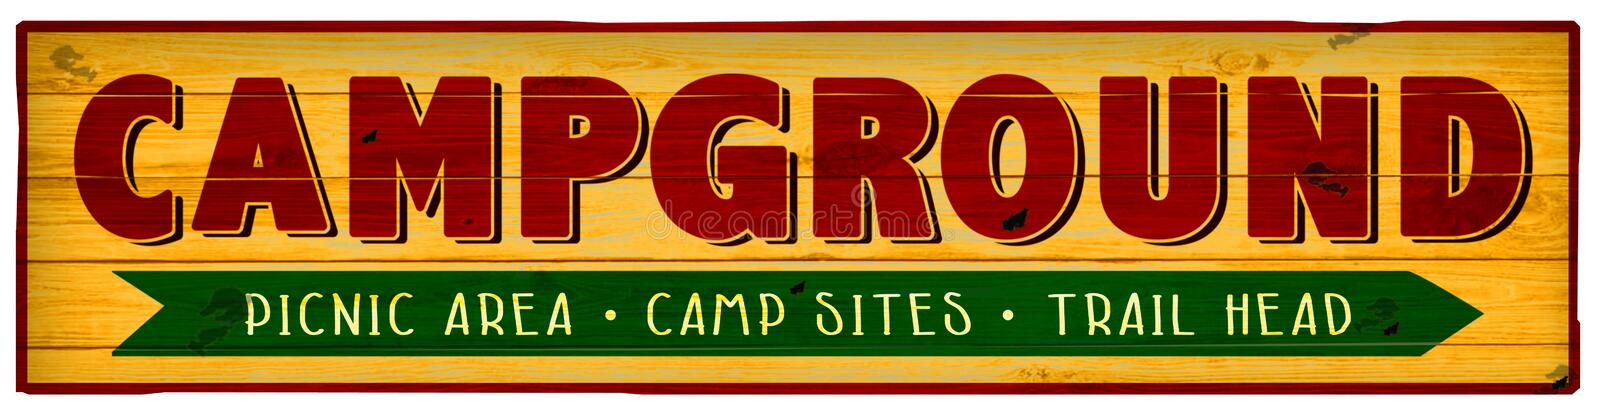 Camping Sign Campground Picnic Trail Hiking Vintage royalty free stock photos